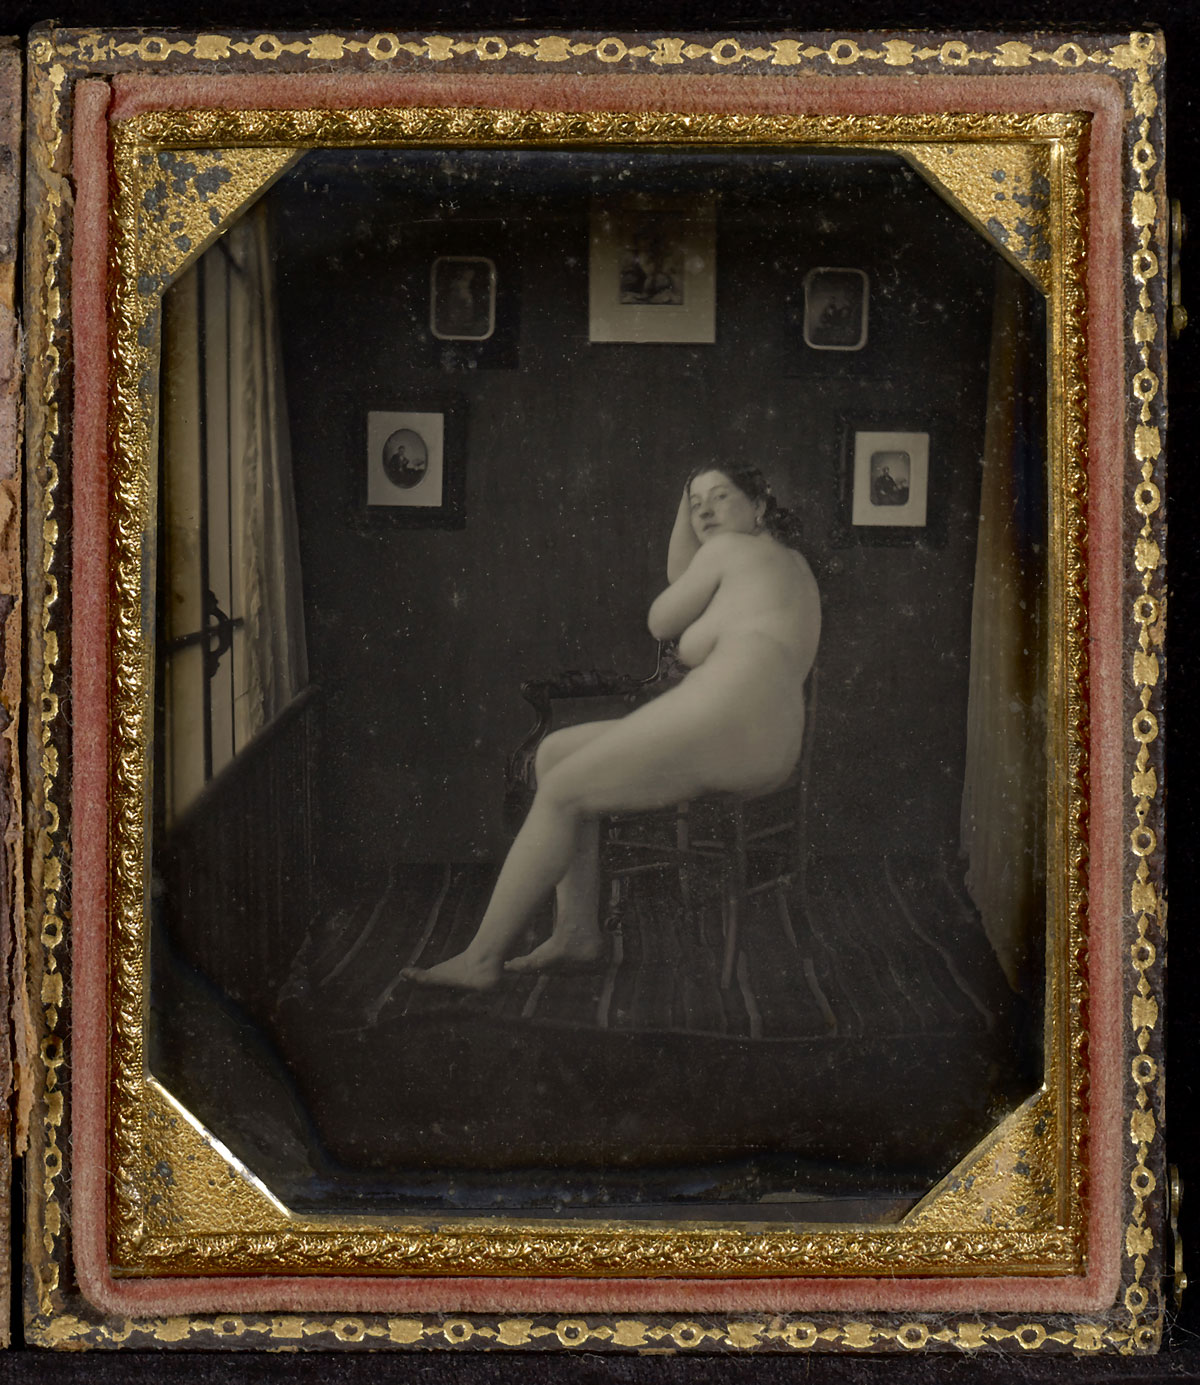 Fotó: Unknown maker (American)<br />Nude Woman in Photographer's Studio<br />c. 1850<br />Daguerreotype<br />1/6 plate<br />Image: 9.5 x 7.6 cm (3 3/4 x 3 in.)<br />Graham Nash Collection